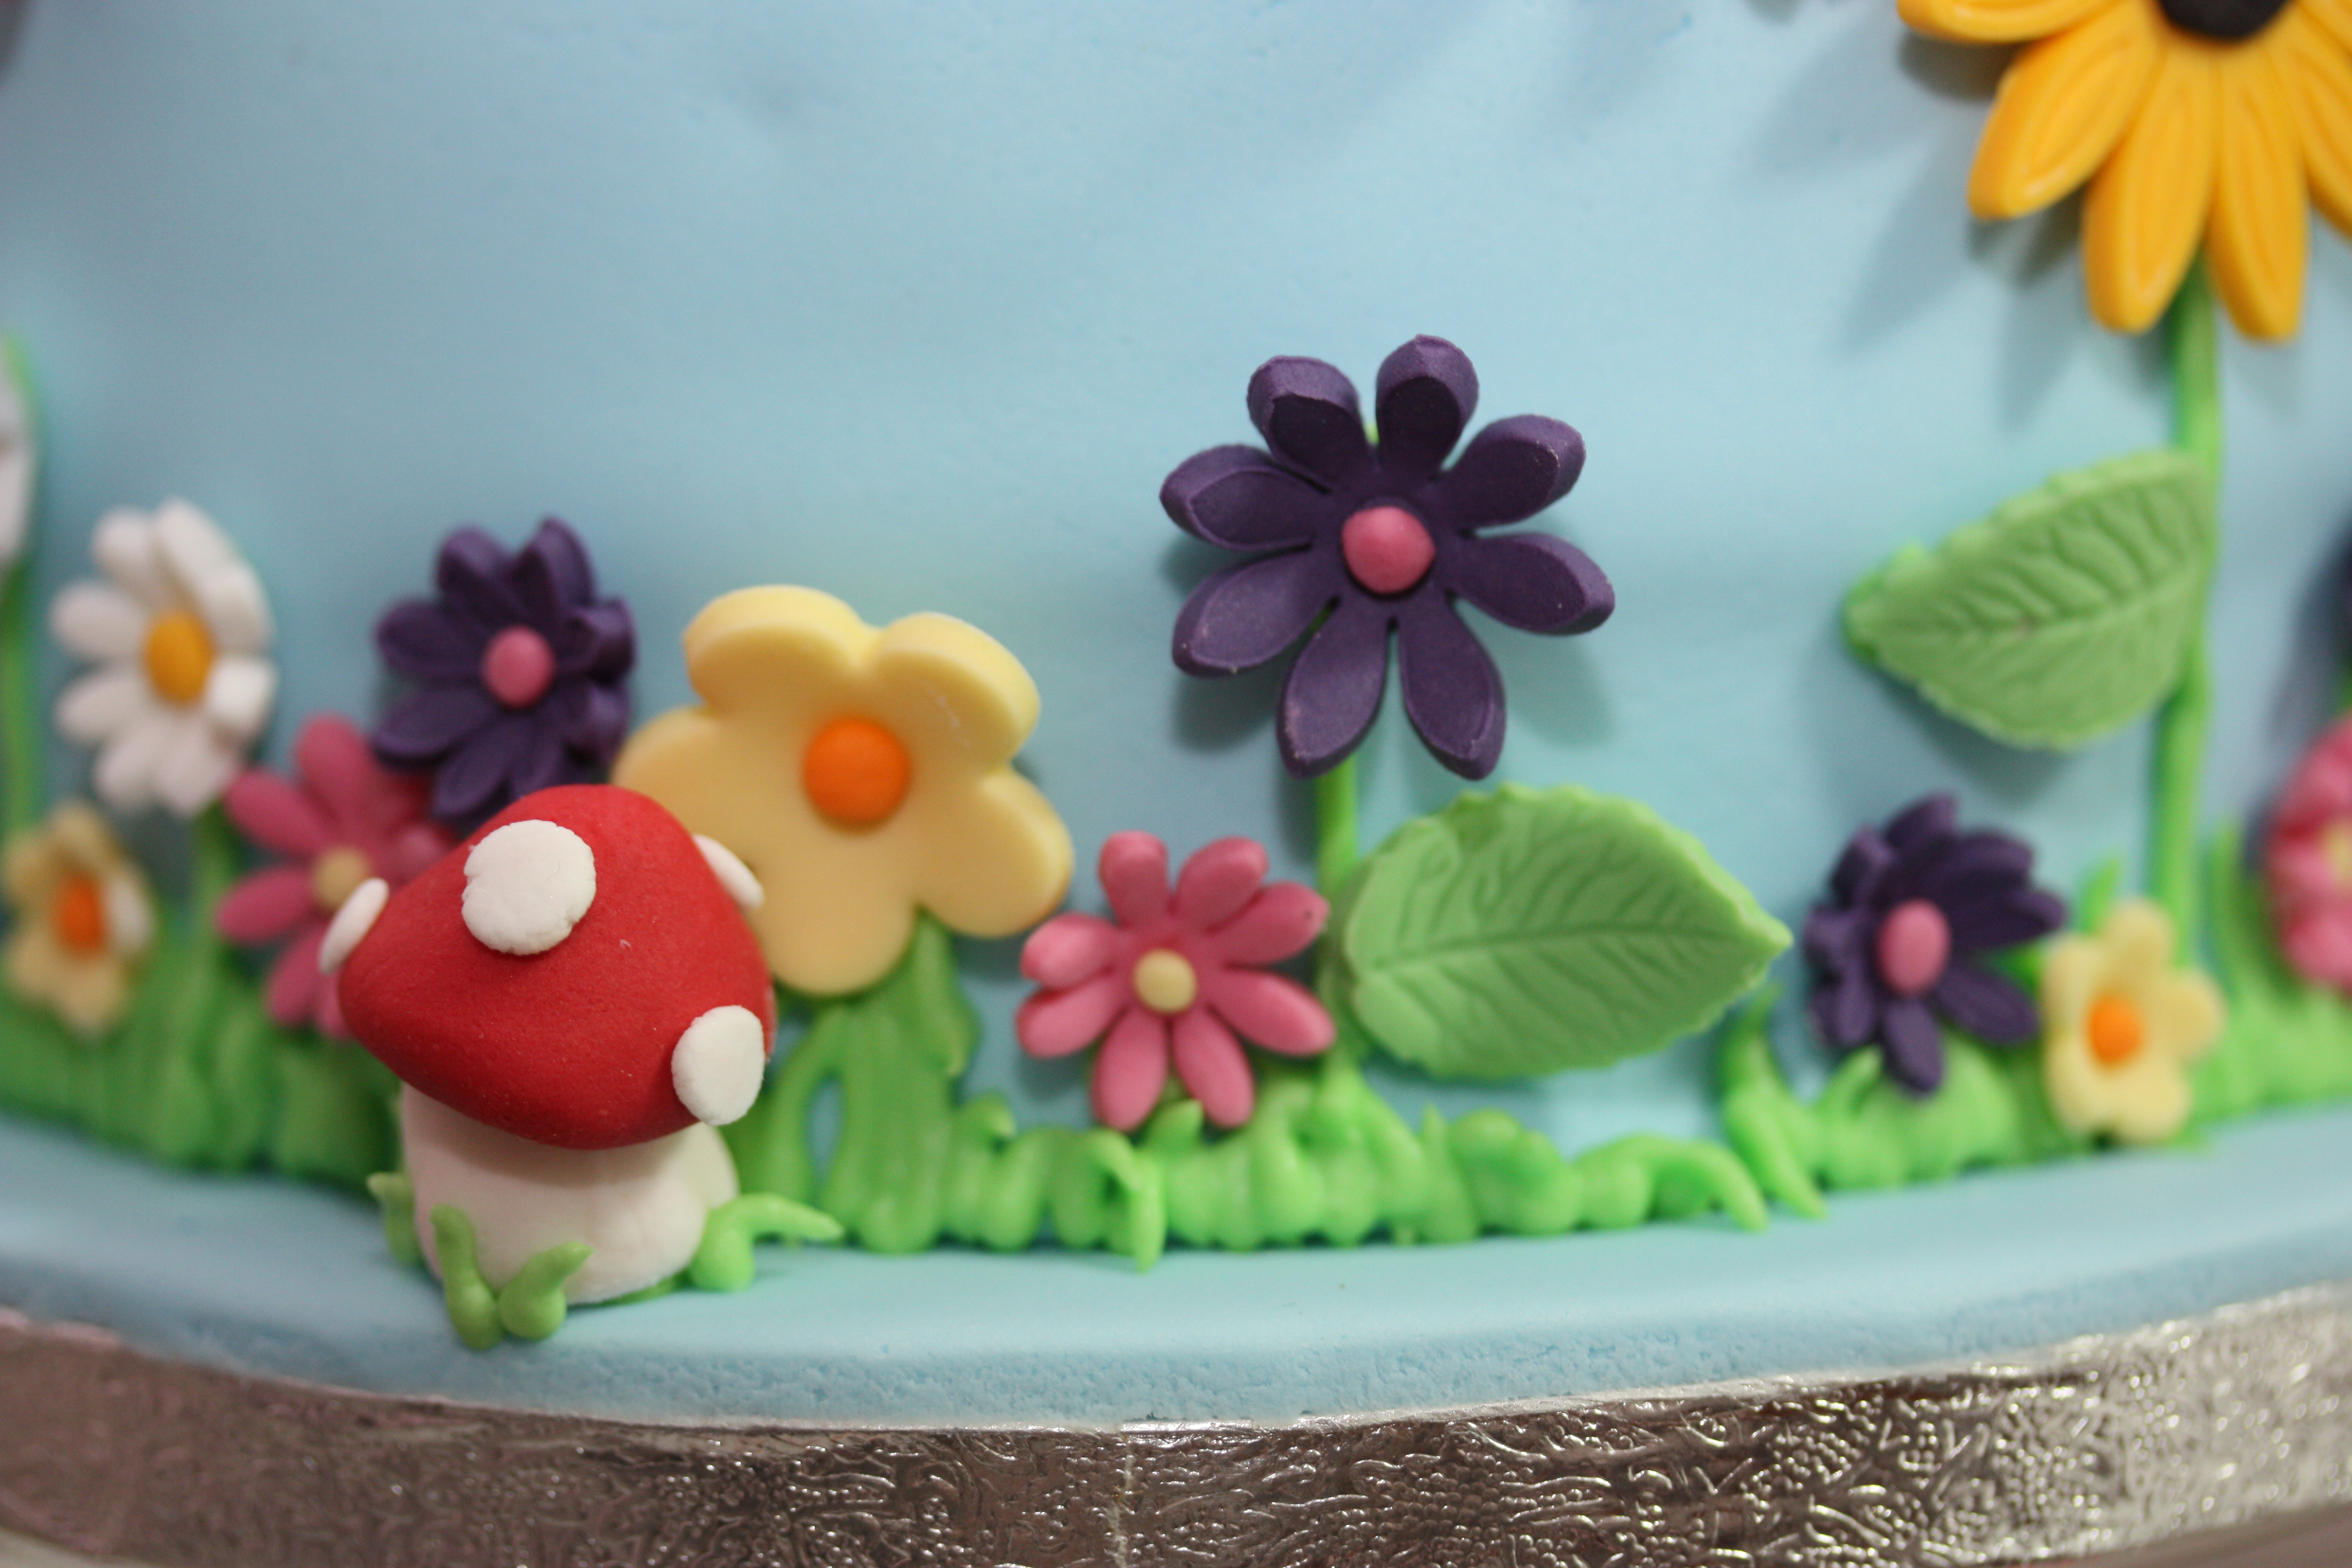 Garden birthday cake opulent cakes for all occasions a garden theme birthday cake came to mind i included in mushrooms bees butterflies and flowers everyone was delighted with the cake all chocolate izmirmasajfo